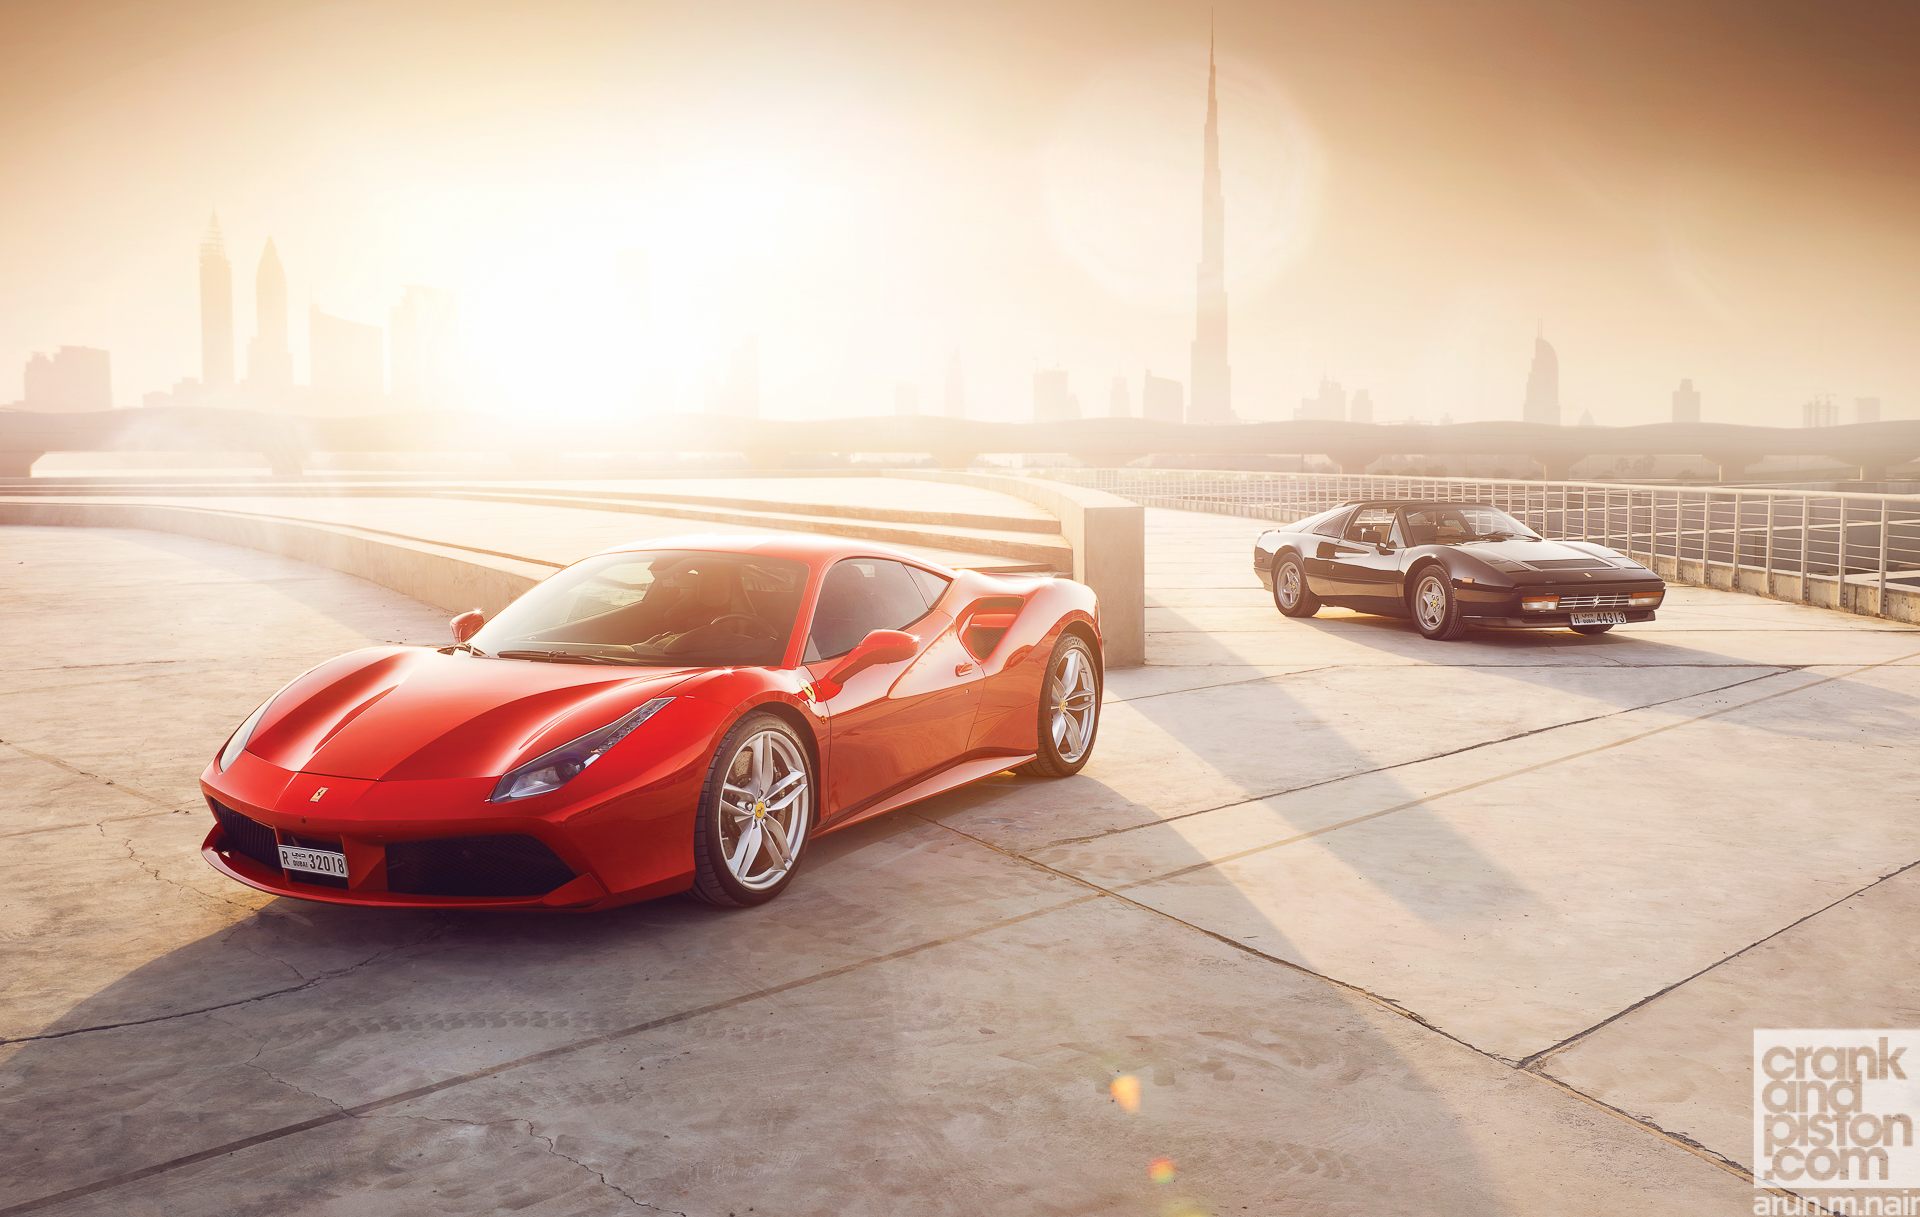 Ferrari 488 Gtb Meets Ferrari 328 Gts Wallpapers Crankandpiston 3